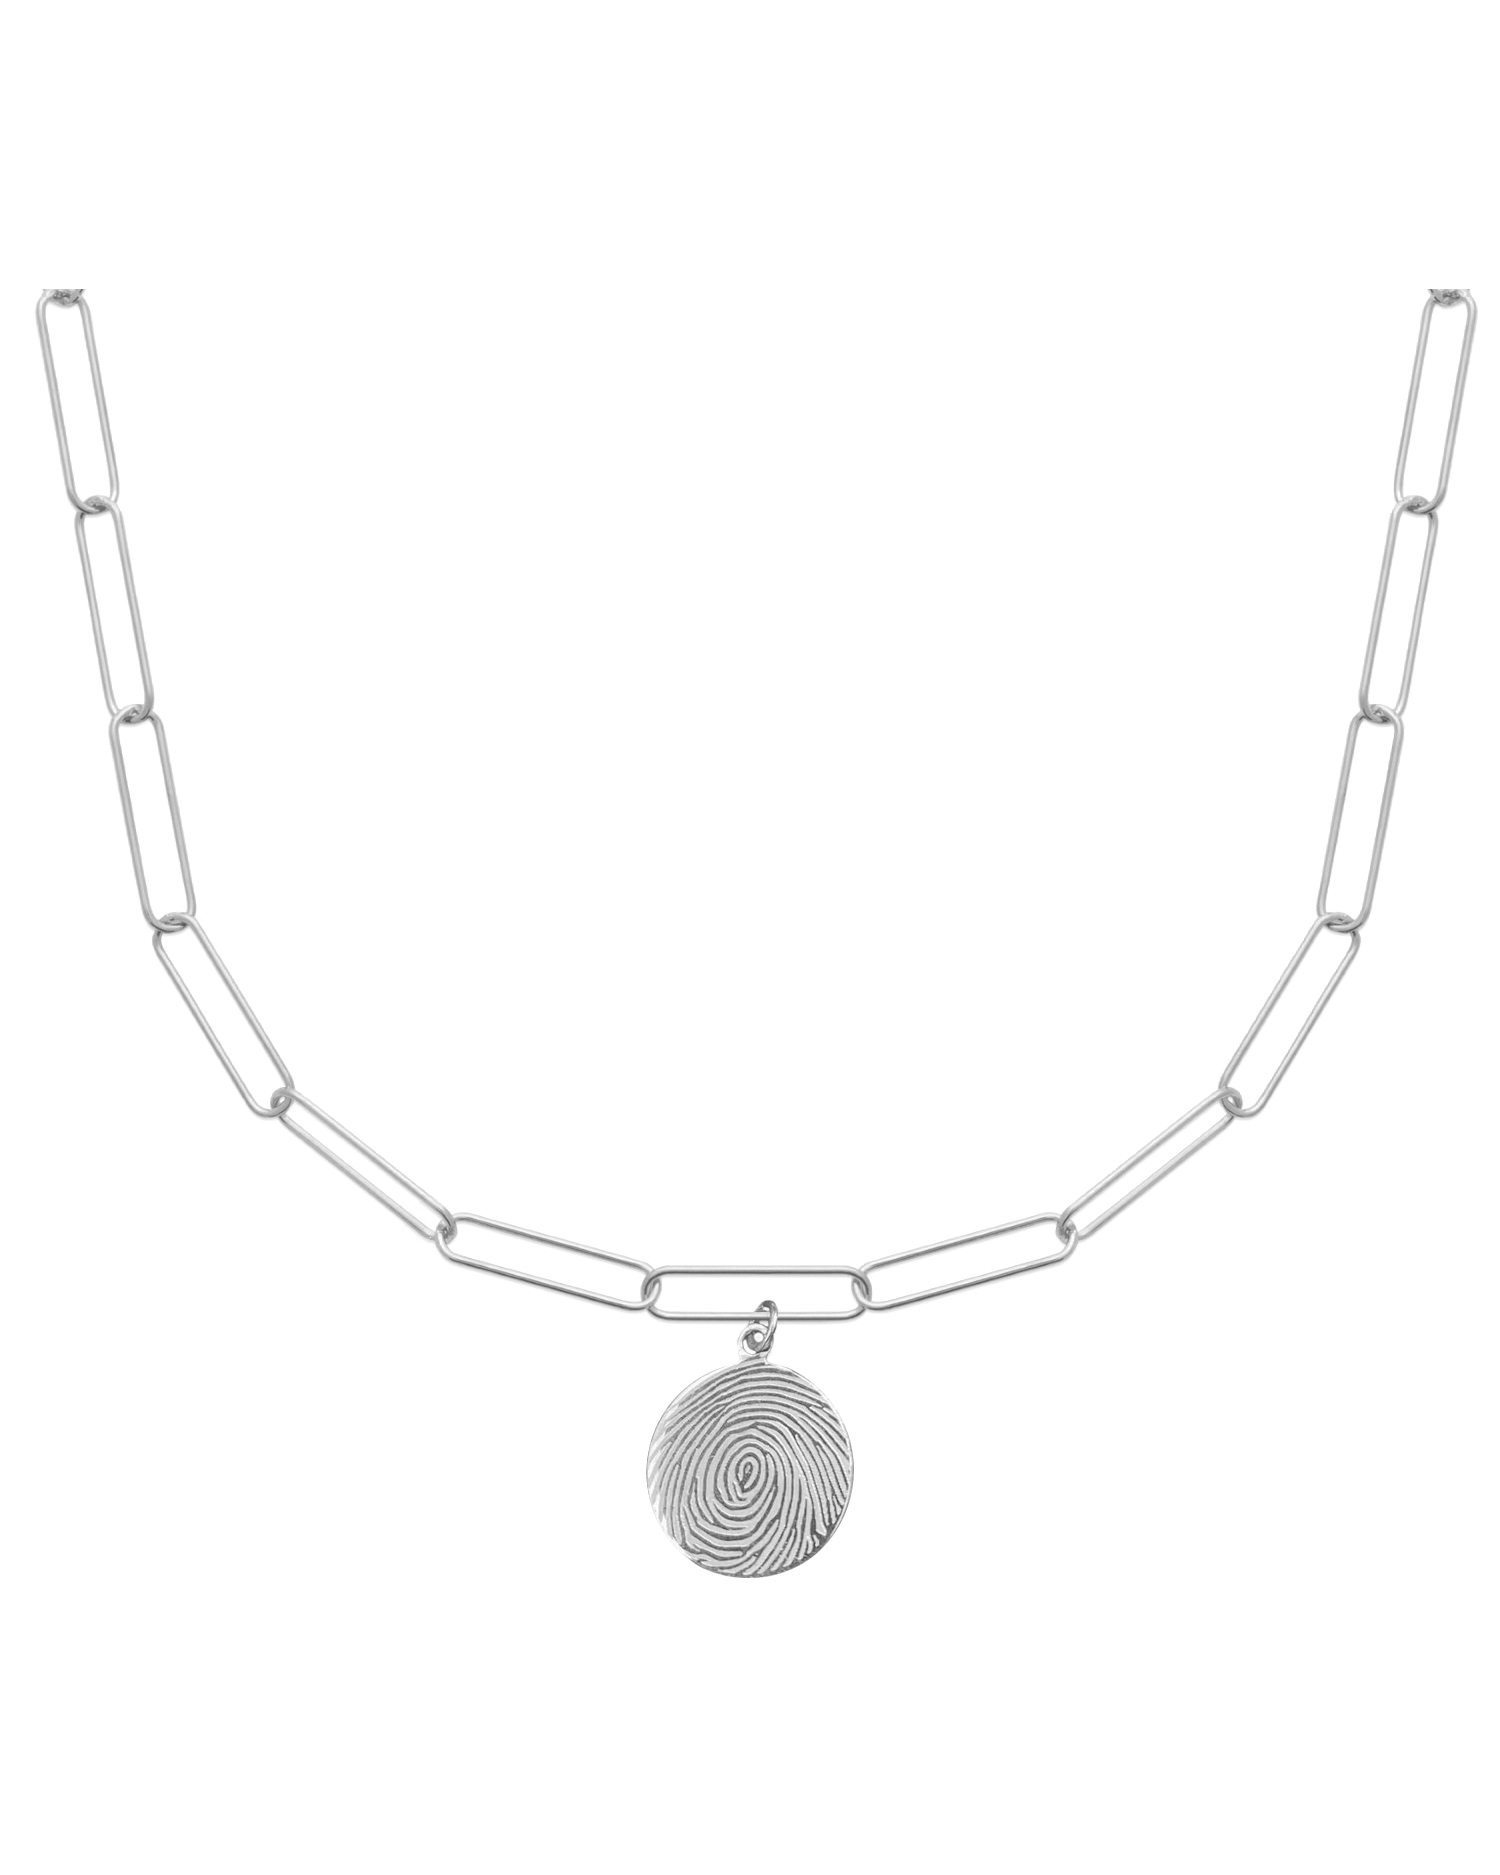 Choker Necklace, Silver